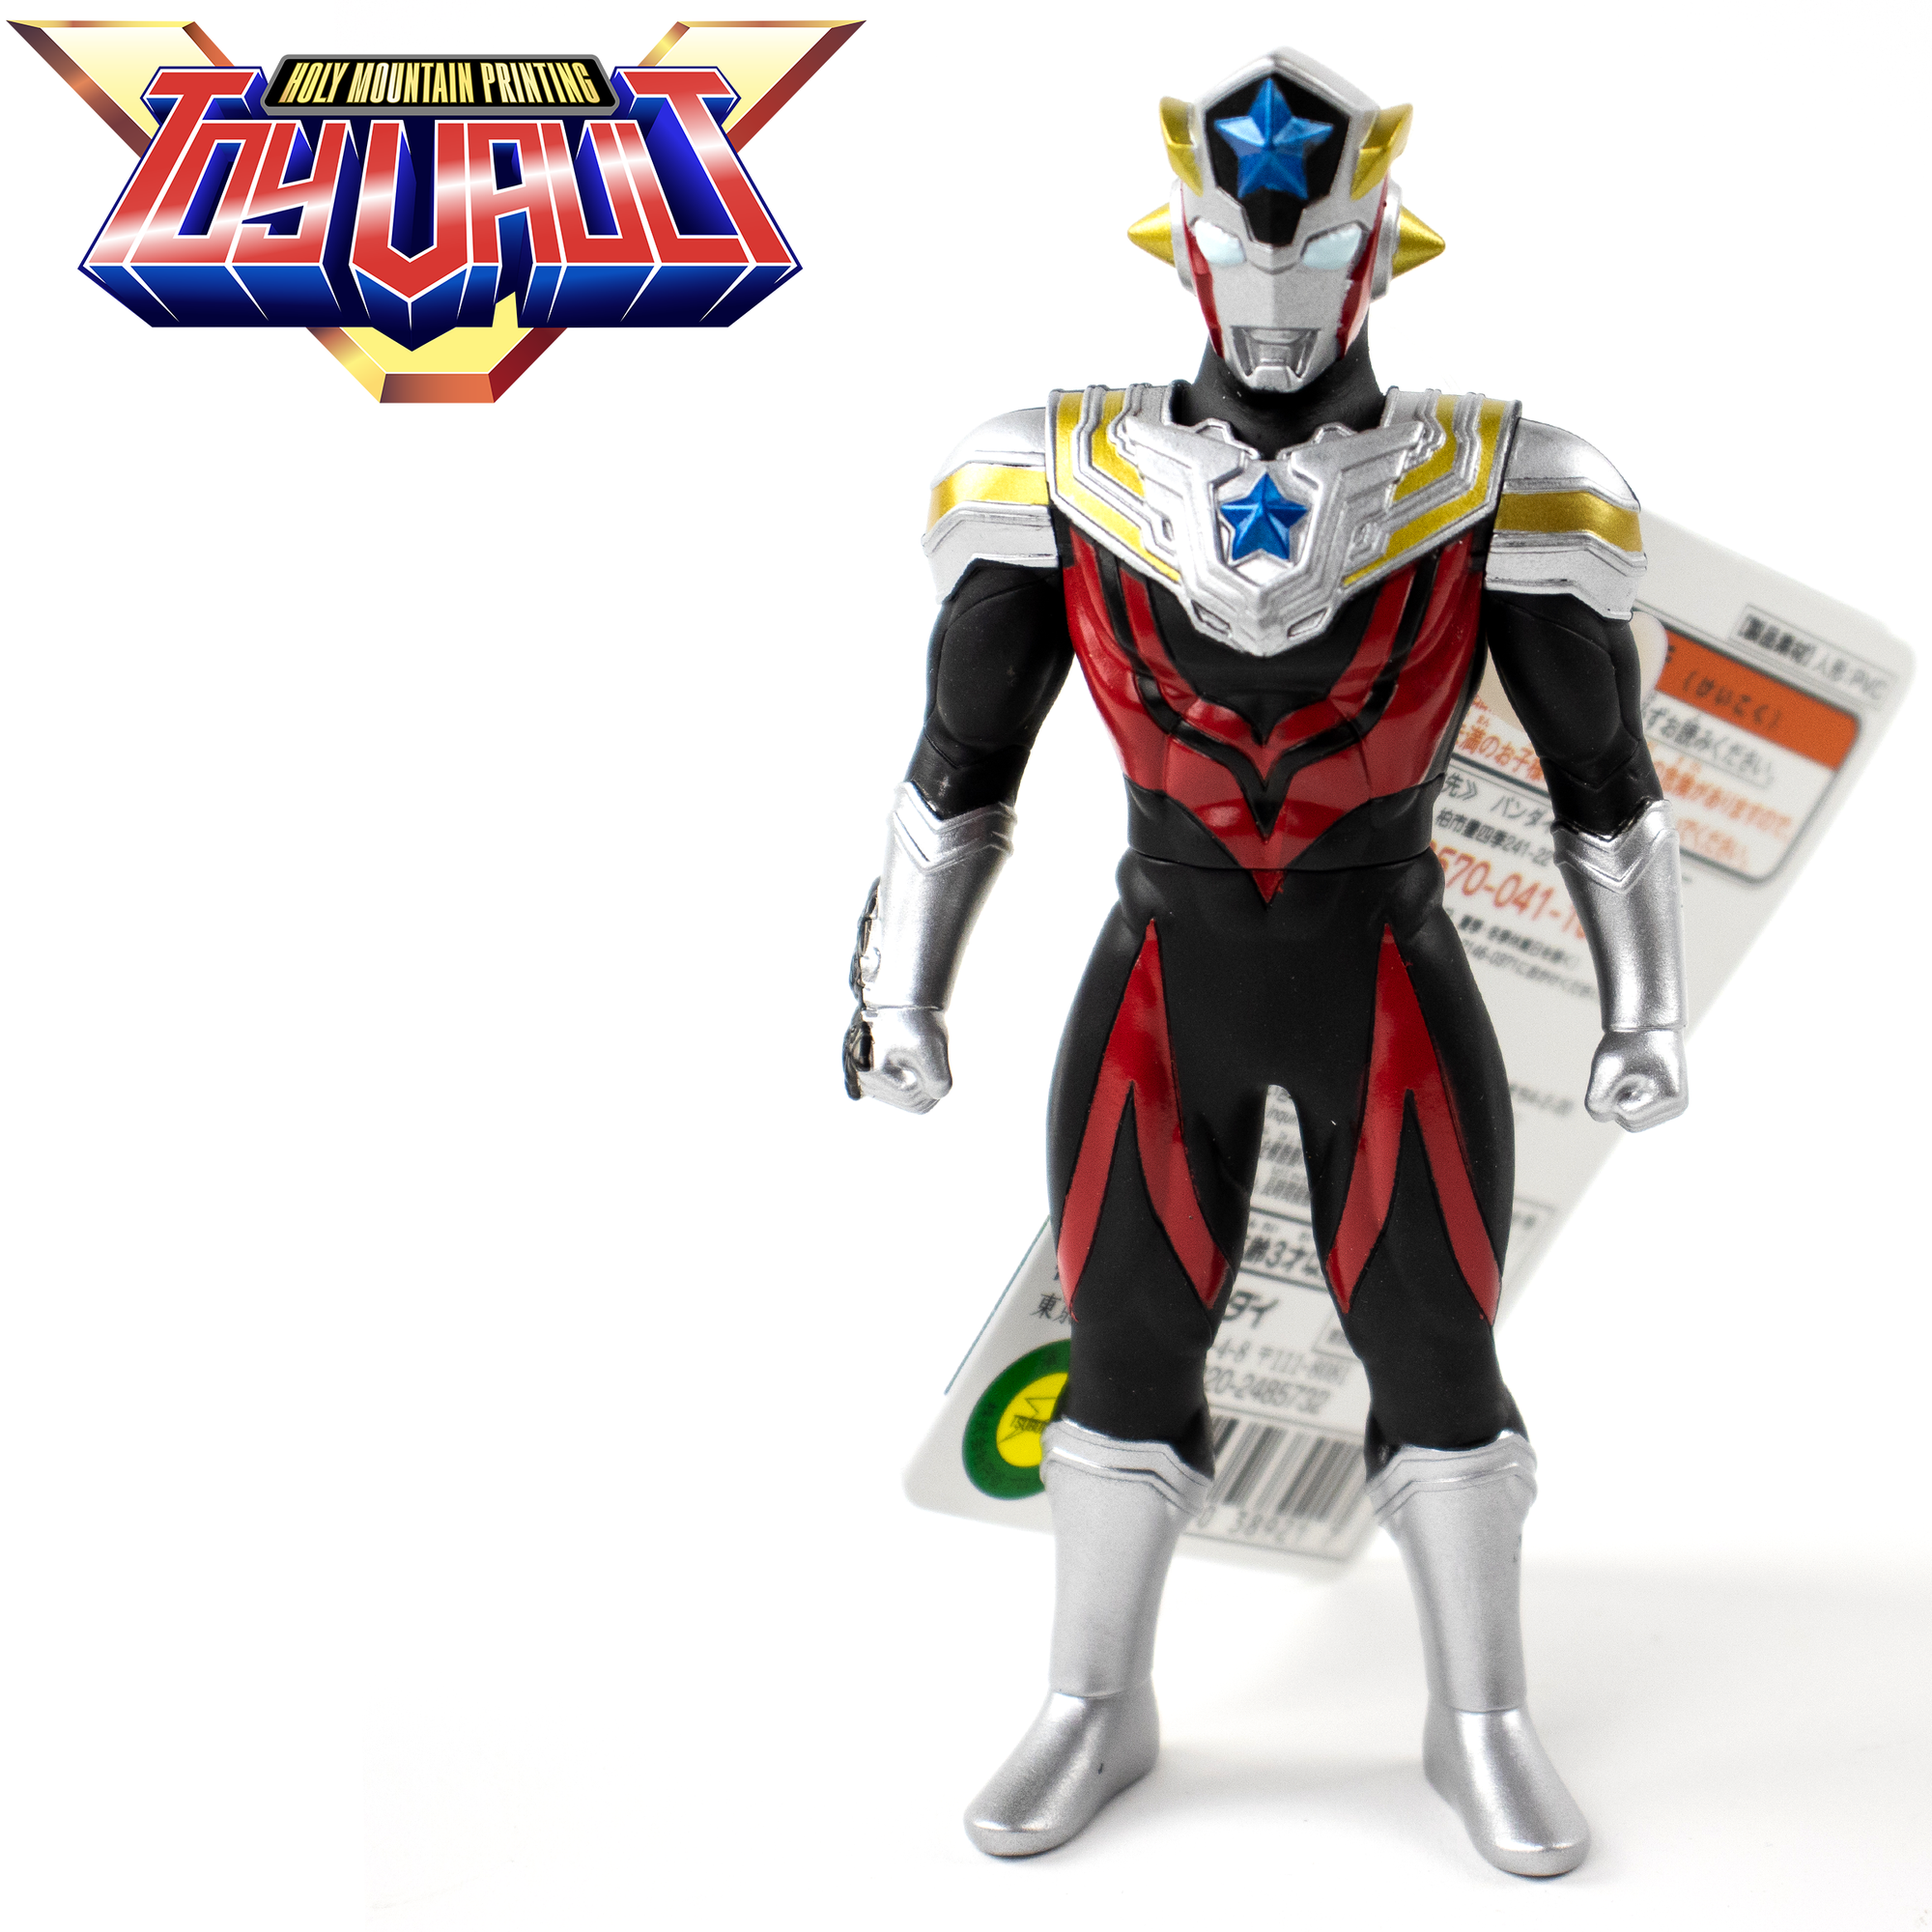 BANDAI - ULTRA HERO SERIES #66 ULTRAMAN TITUS